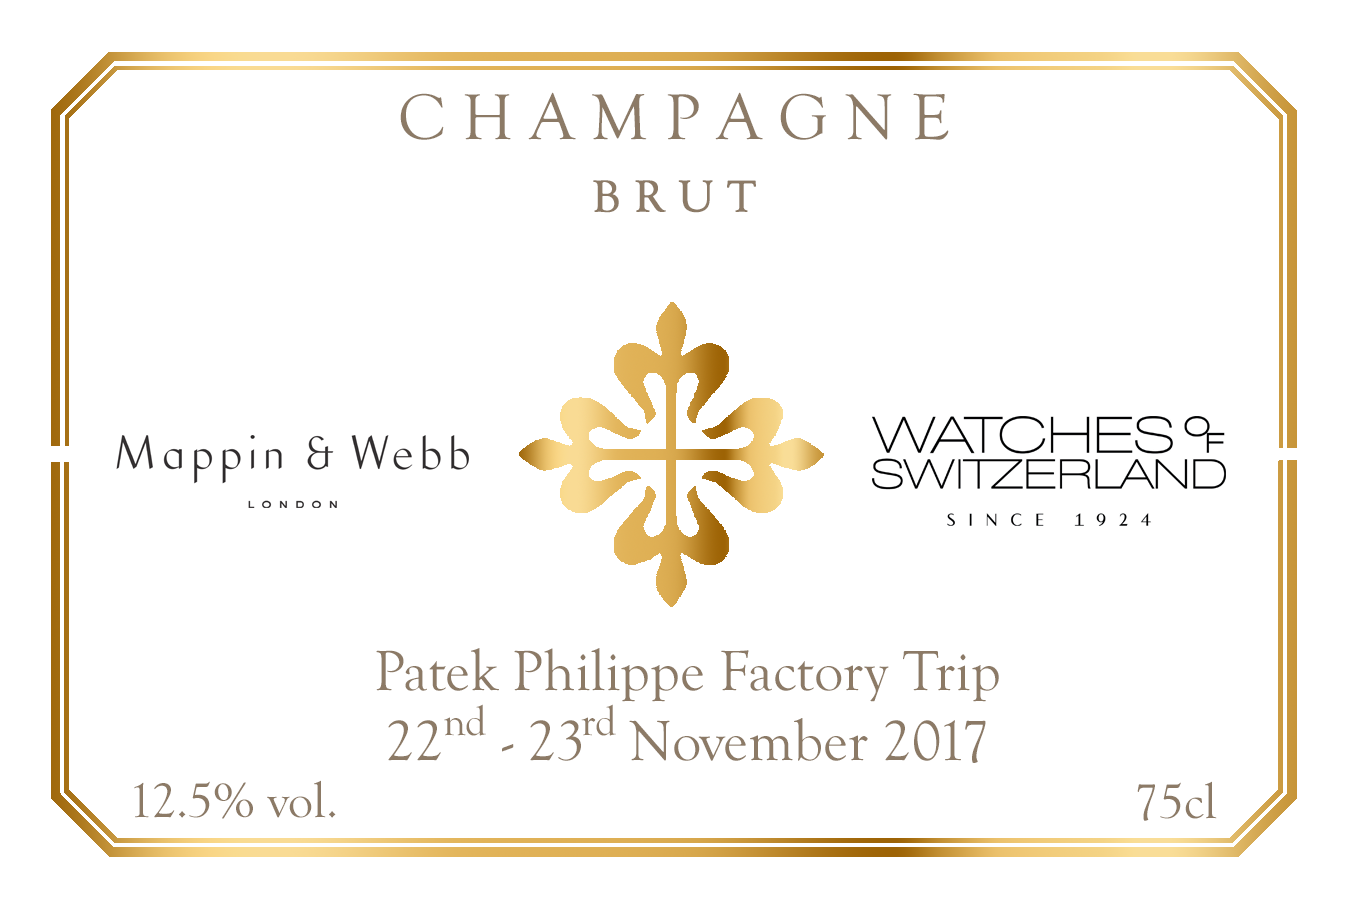 Watches of Switzerland Champagne